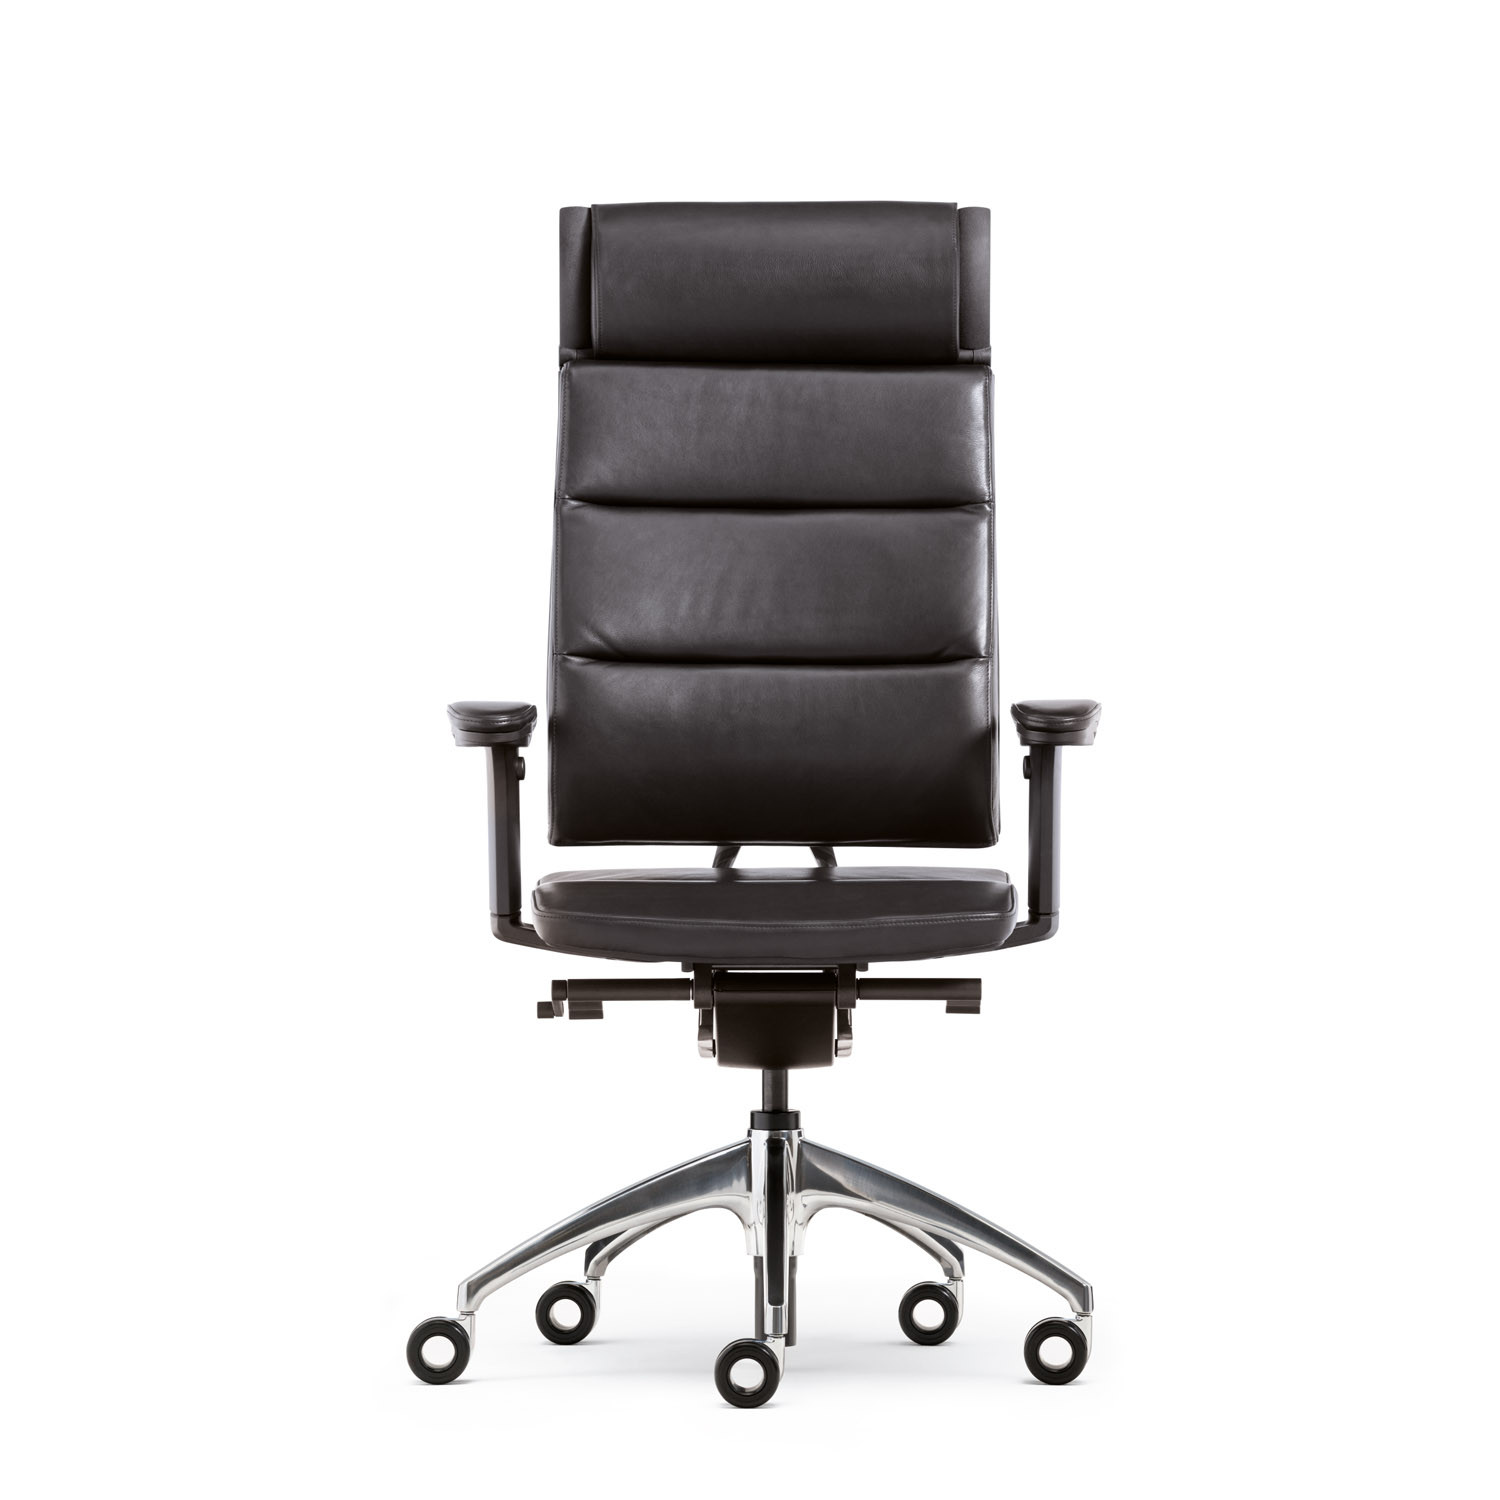 Open up modern classic chair ergonomic office chairs Modern classic chairs